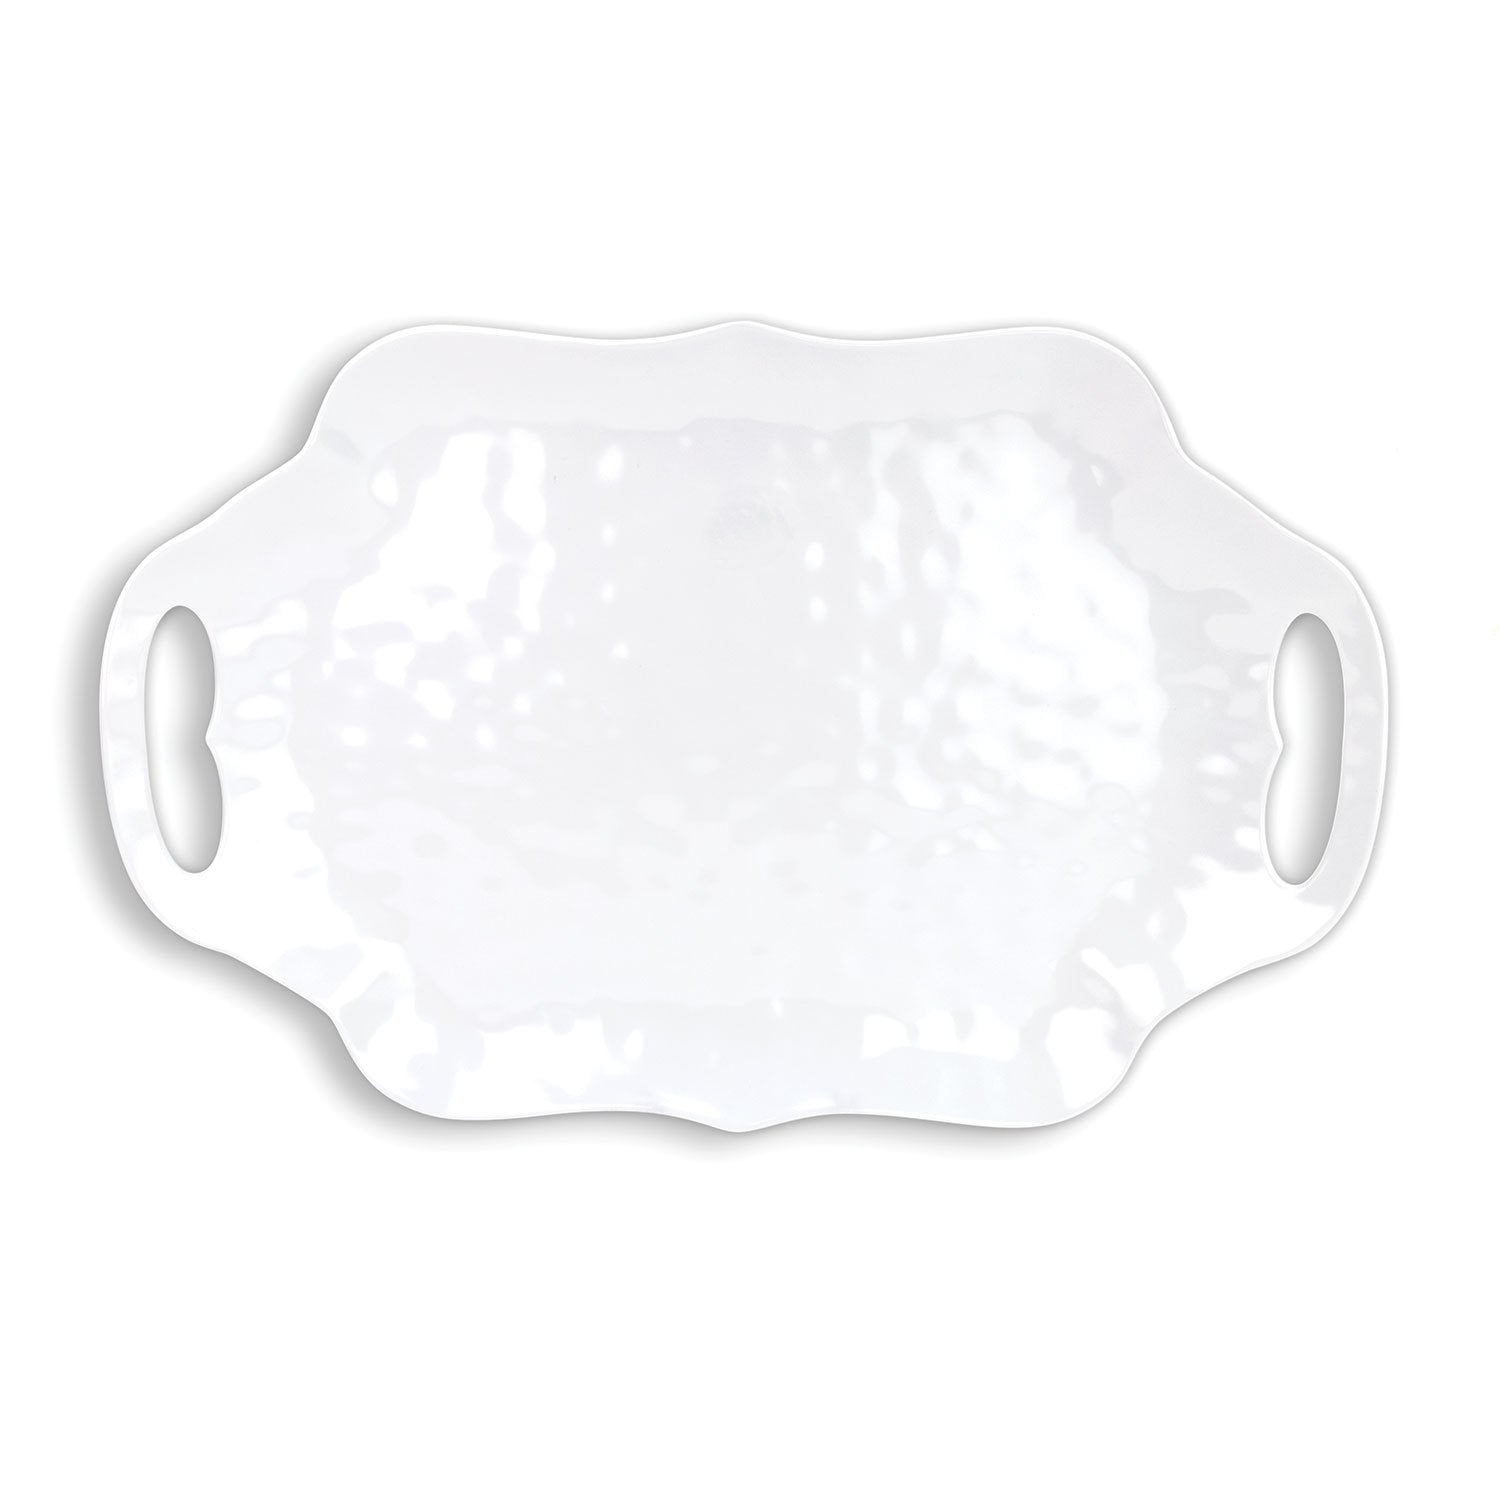 White on White Melamine Serveware Serving Tray